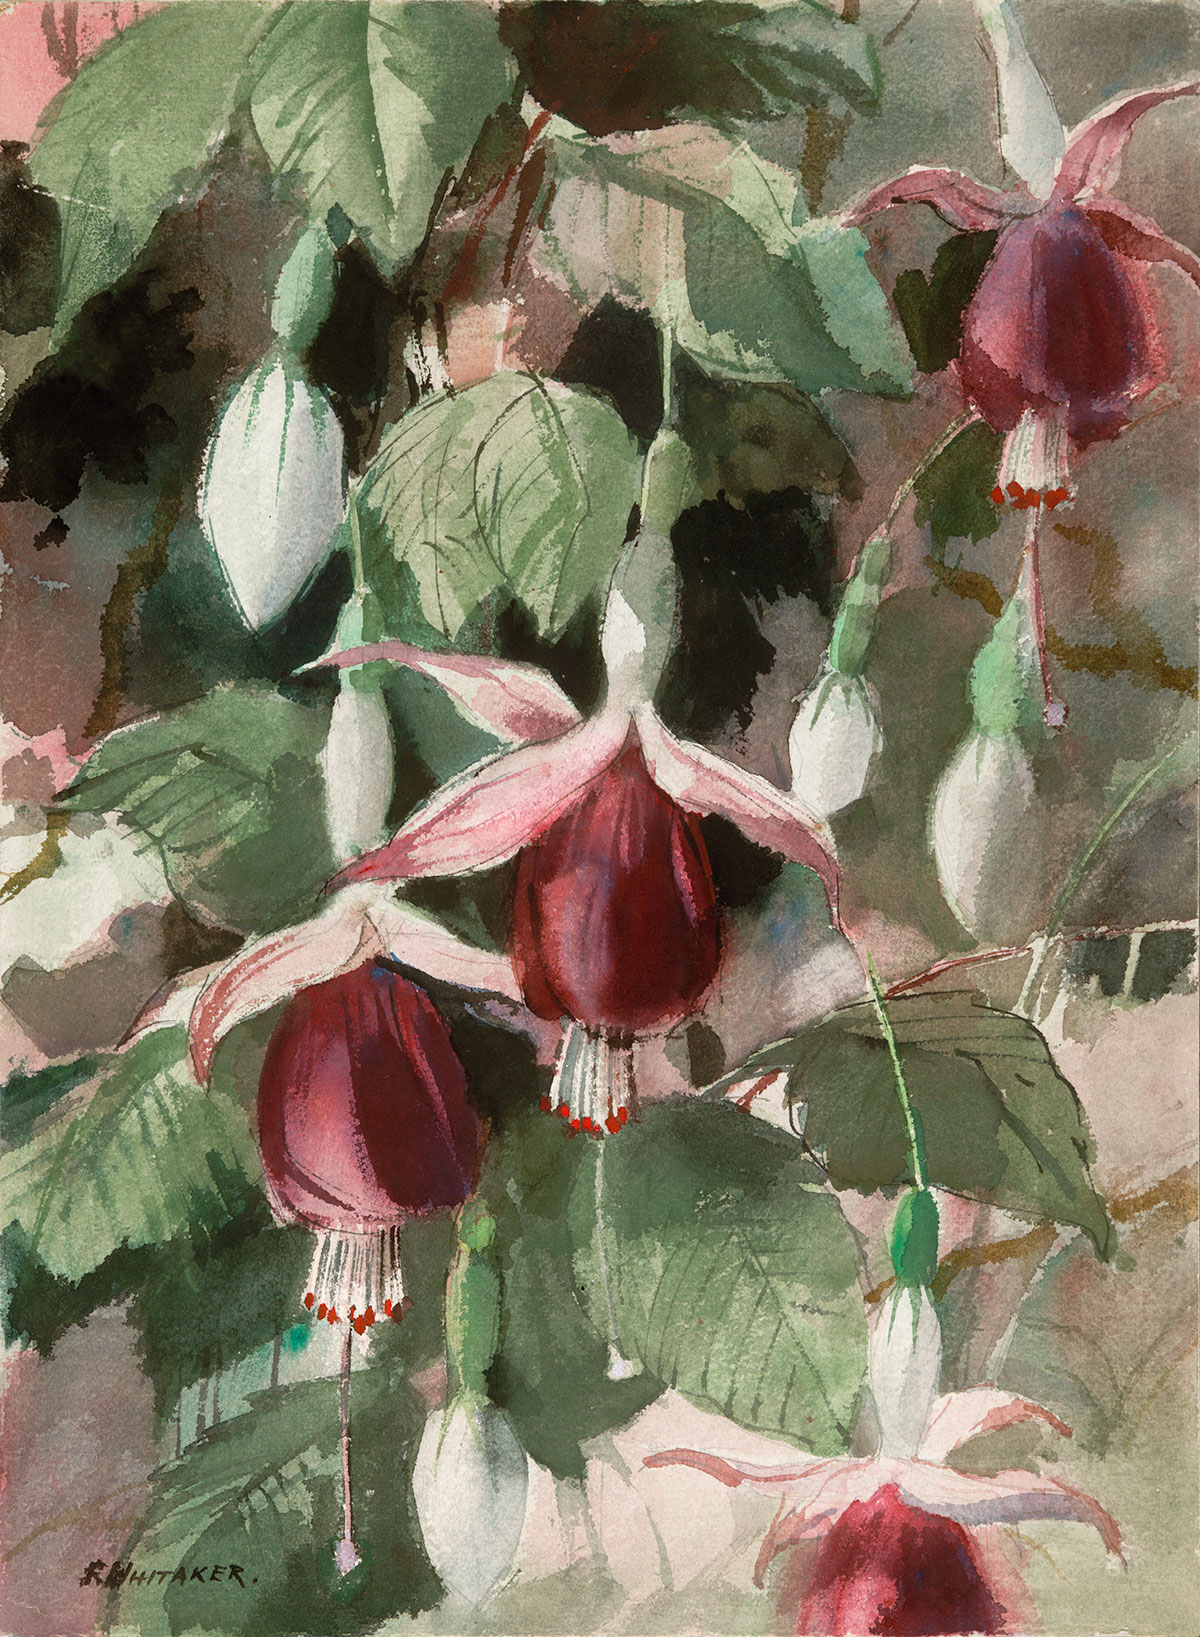 """Fuchsias #1"" 1965 © Frederic Whitaker 22x16 inches Watercolor"